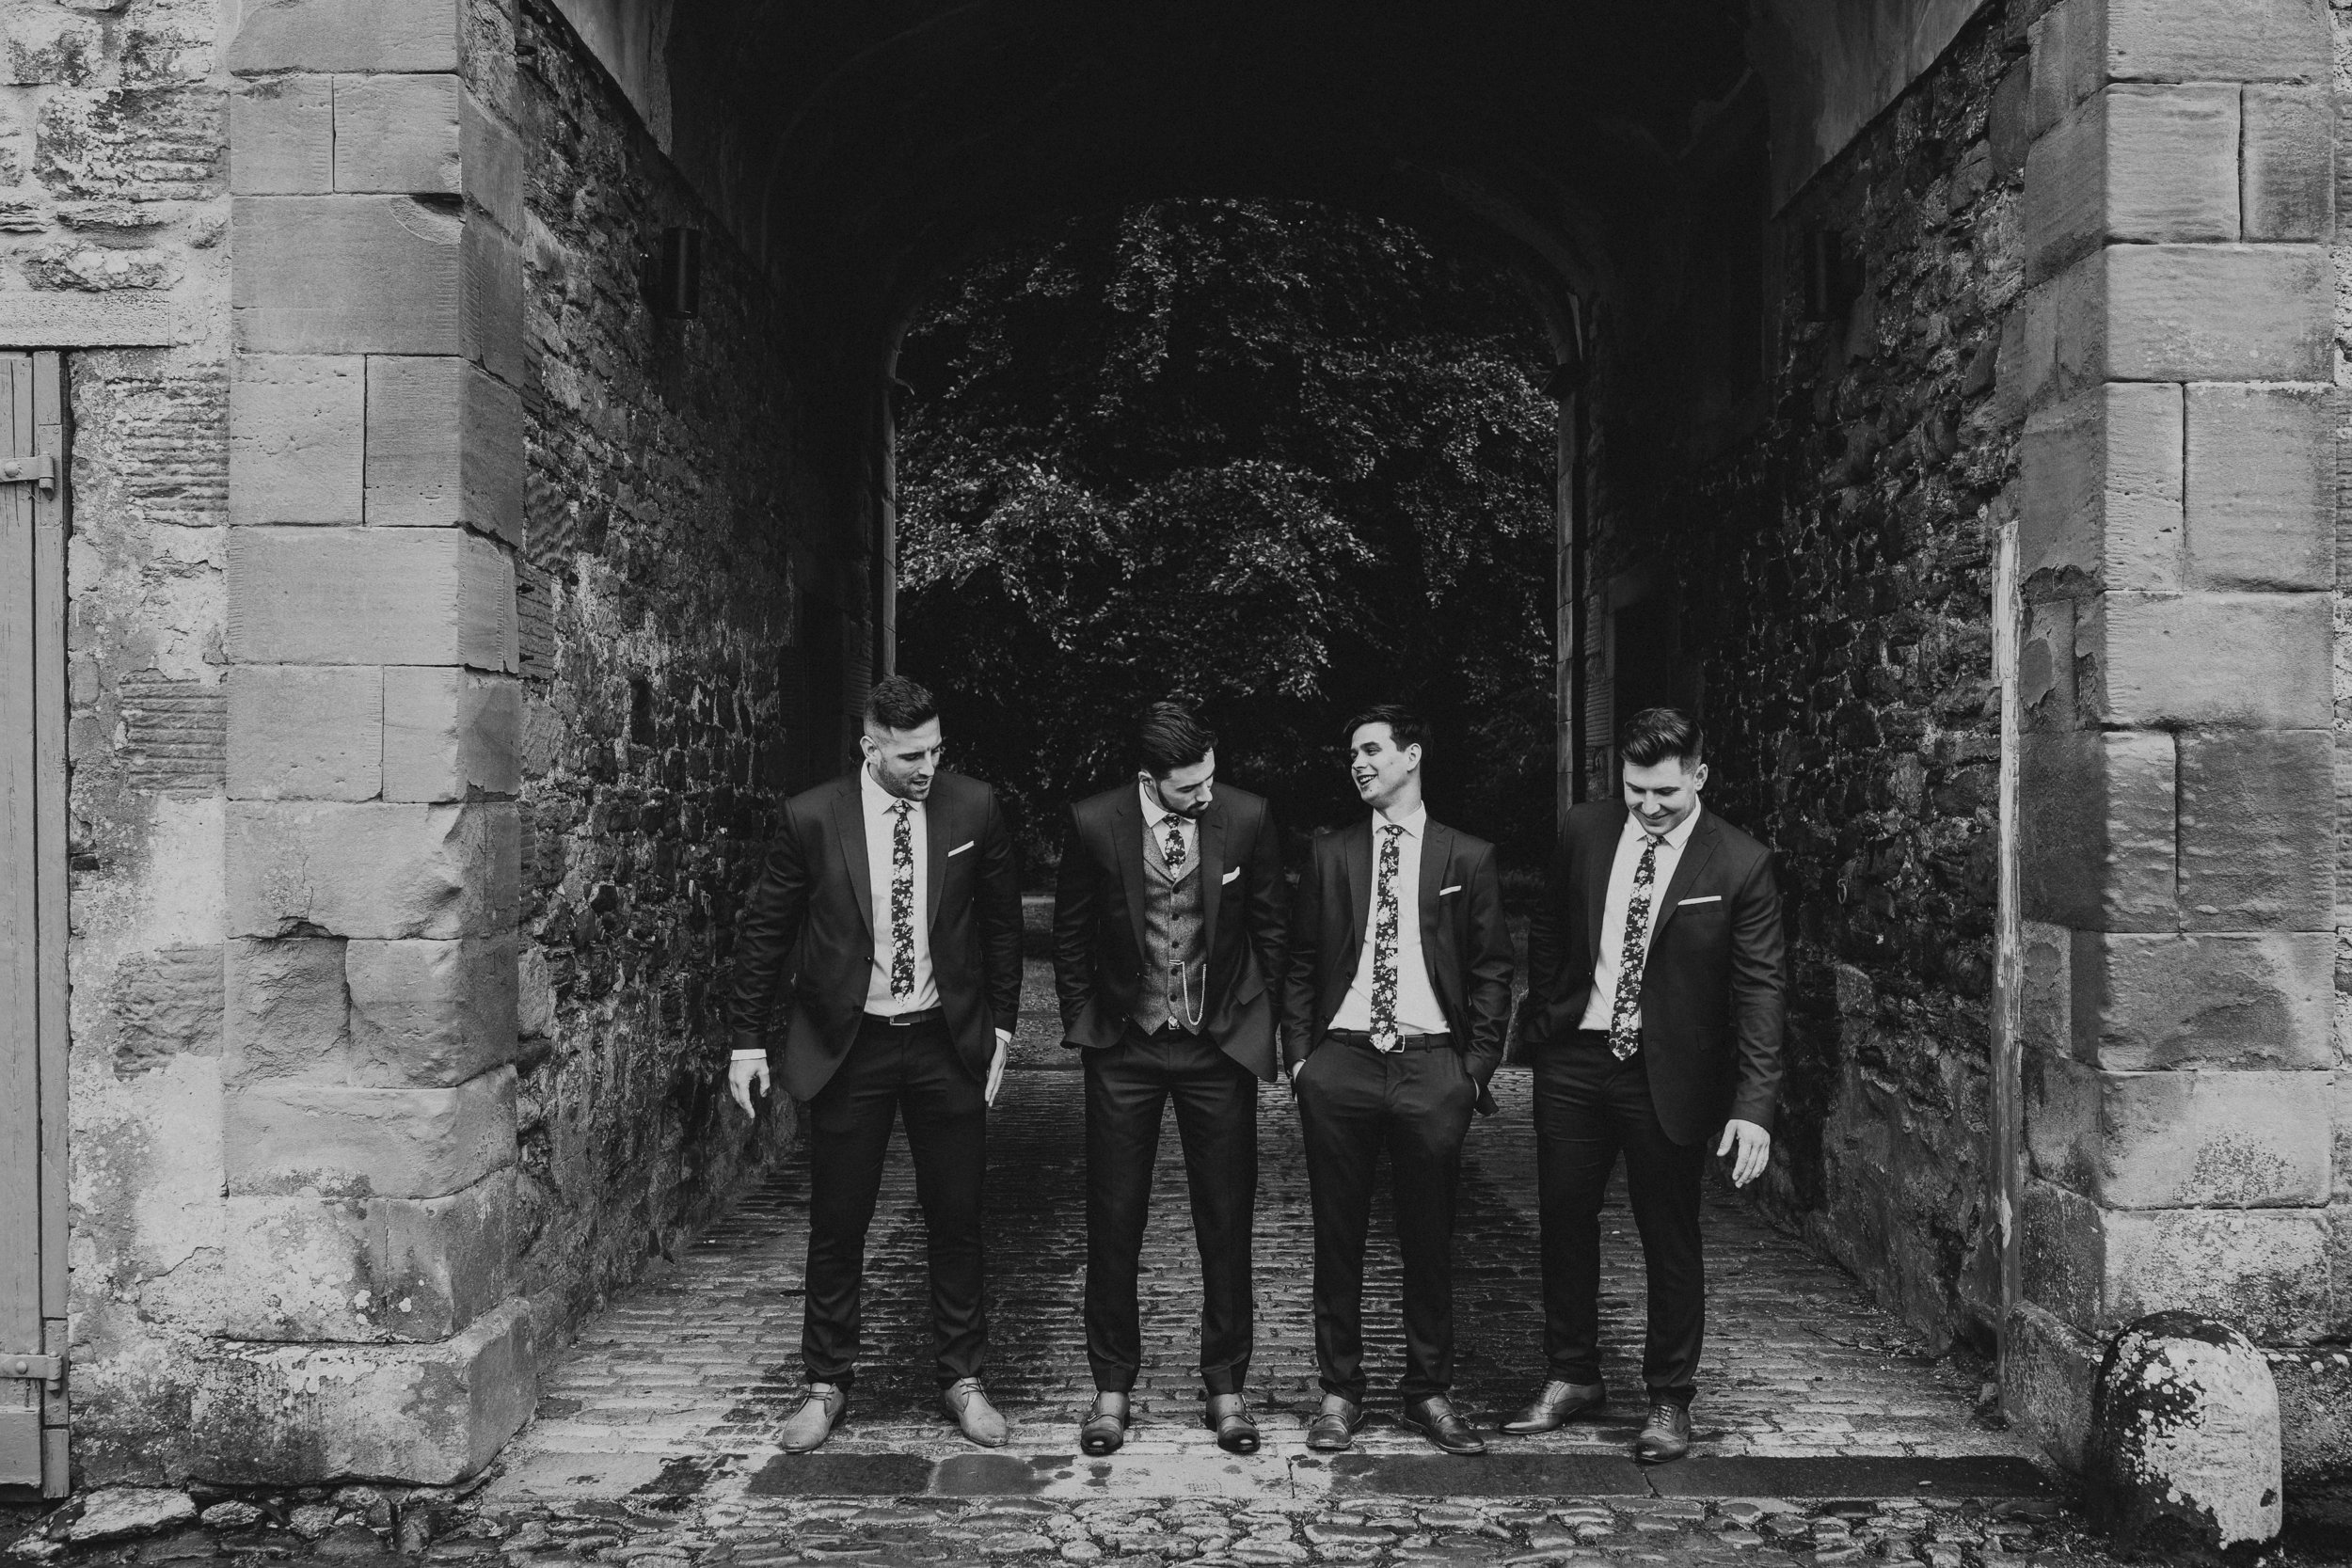 PJ_PHILLIPS_PHOTOGRAPHY_EDINBURGH_WEDDERBURN_BARNS_WEDDING_EDINBURGH_WEDDING_PHOTOGRAPHER_26.jpg